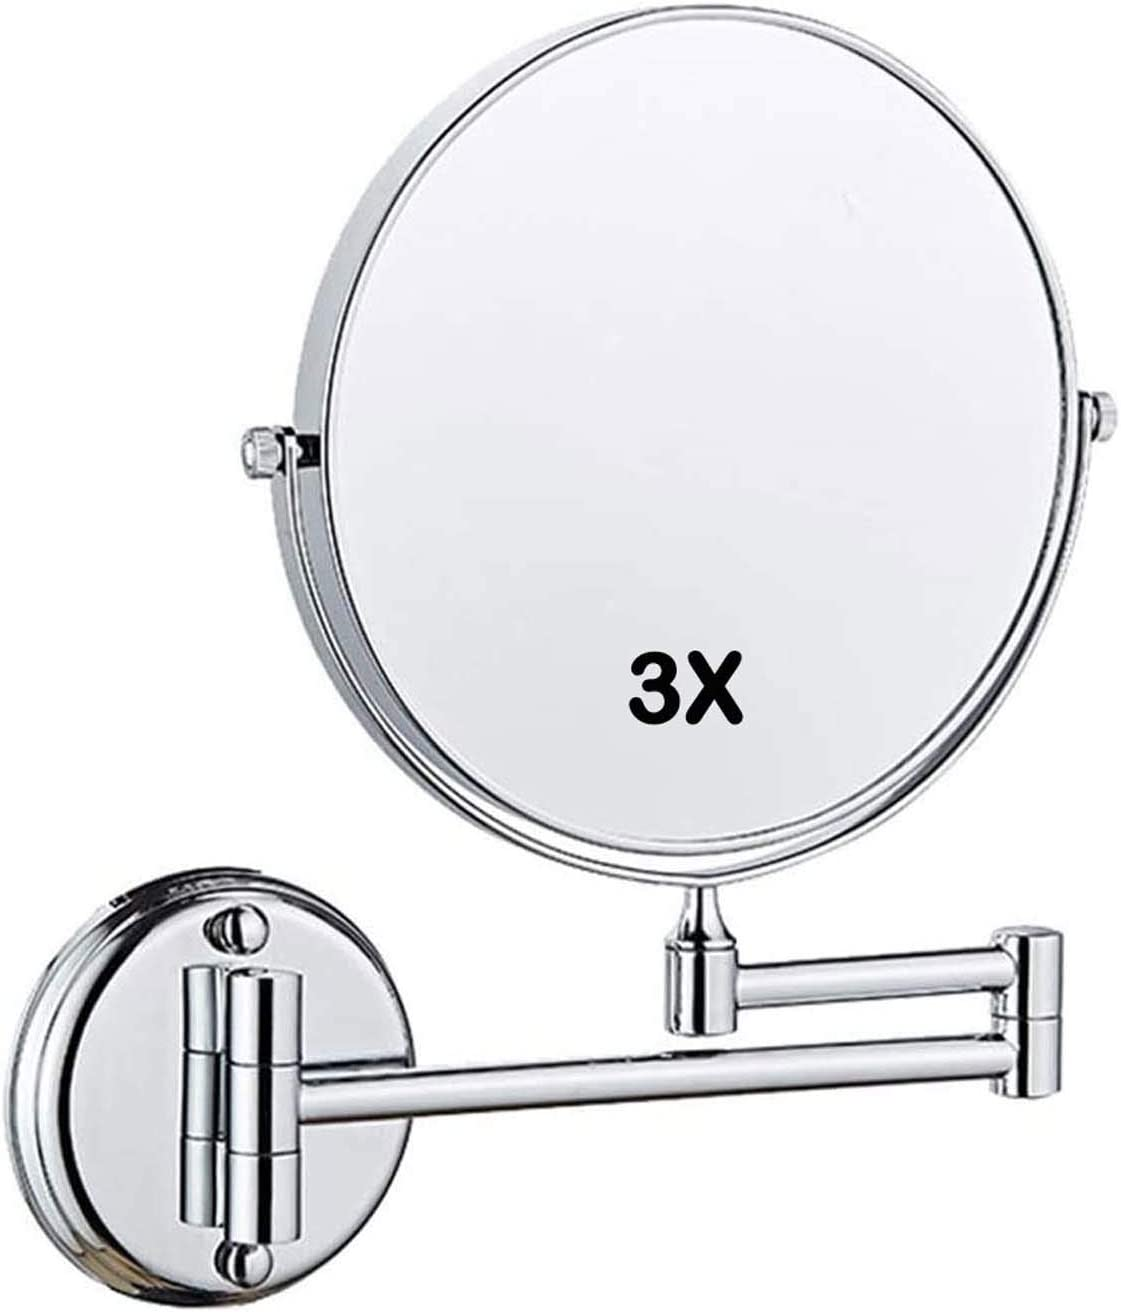 ZHCHL Wall Mounted Max 90% OFF Makeup Mirror Ma with Round 3X Max 71% OFF